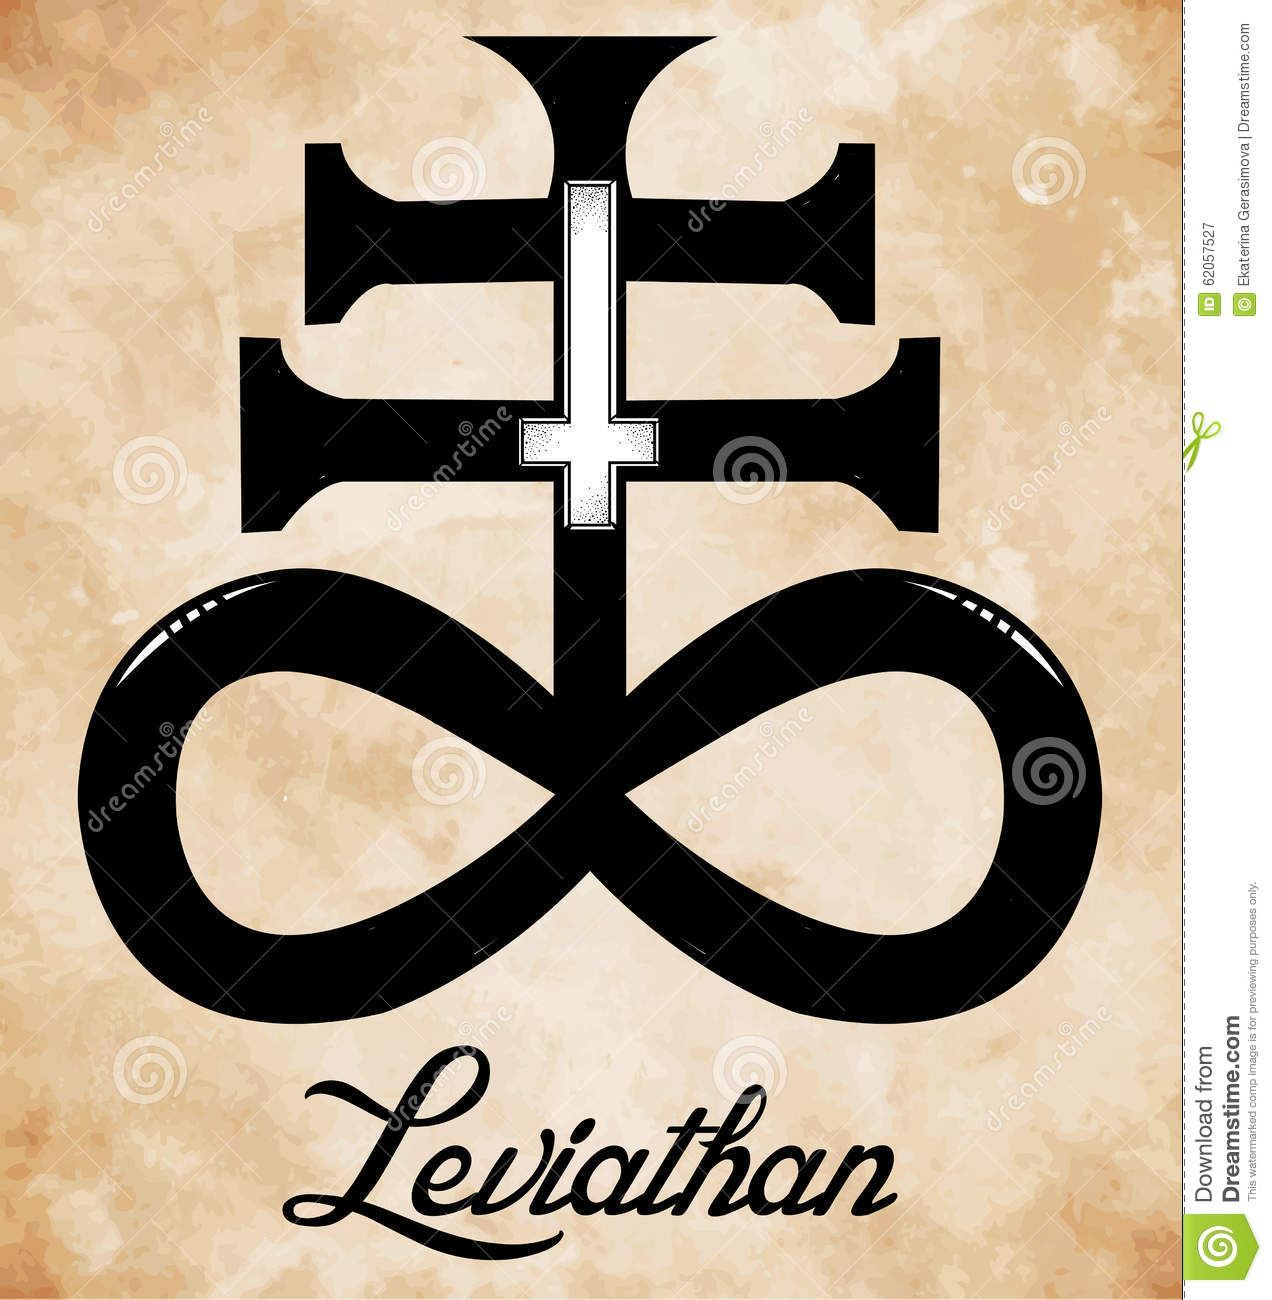 Stock Illustration Satanic Cross Symbol Illsutration Also Known As Leviathan Variation Alchemical Black Sulfur Represents Fire Image62057527